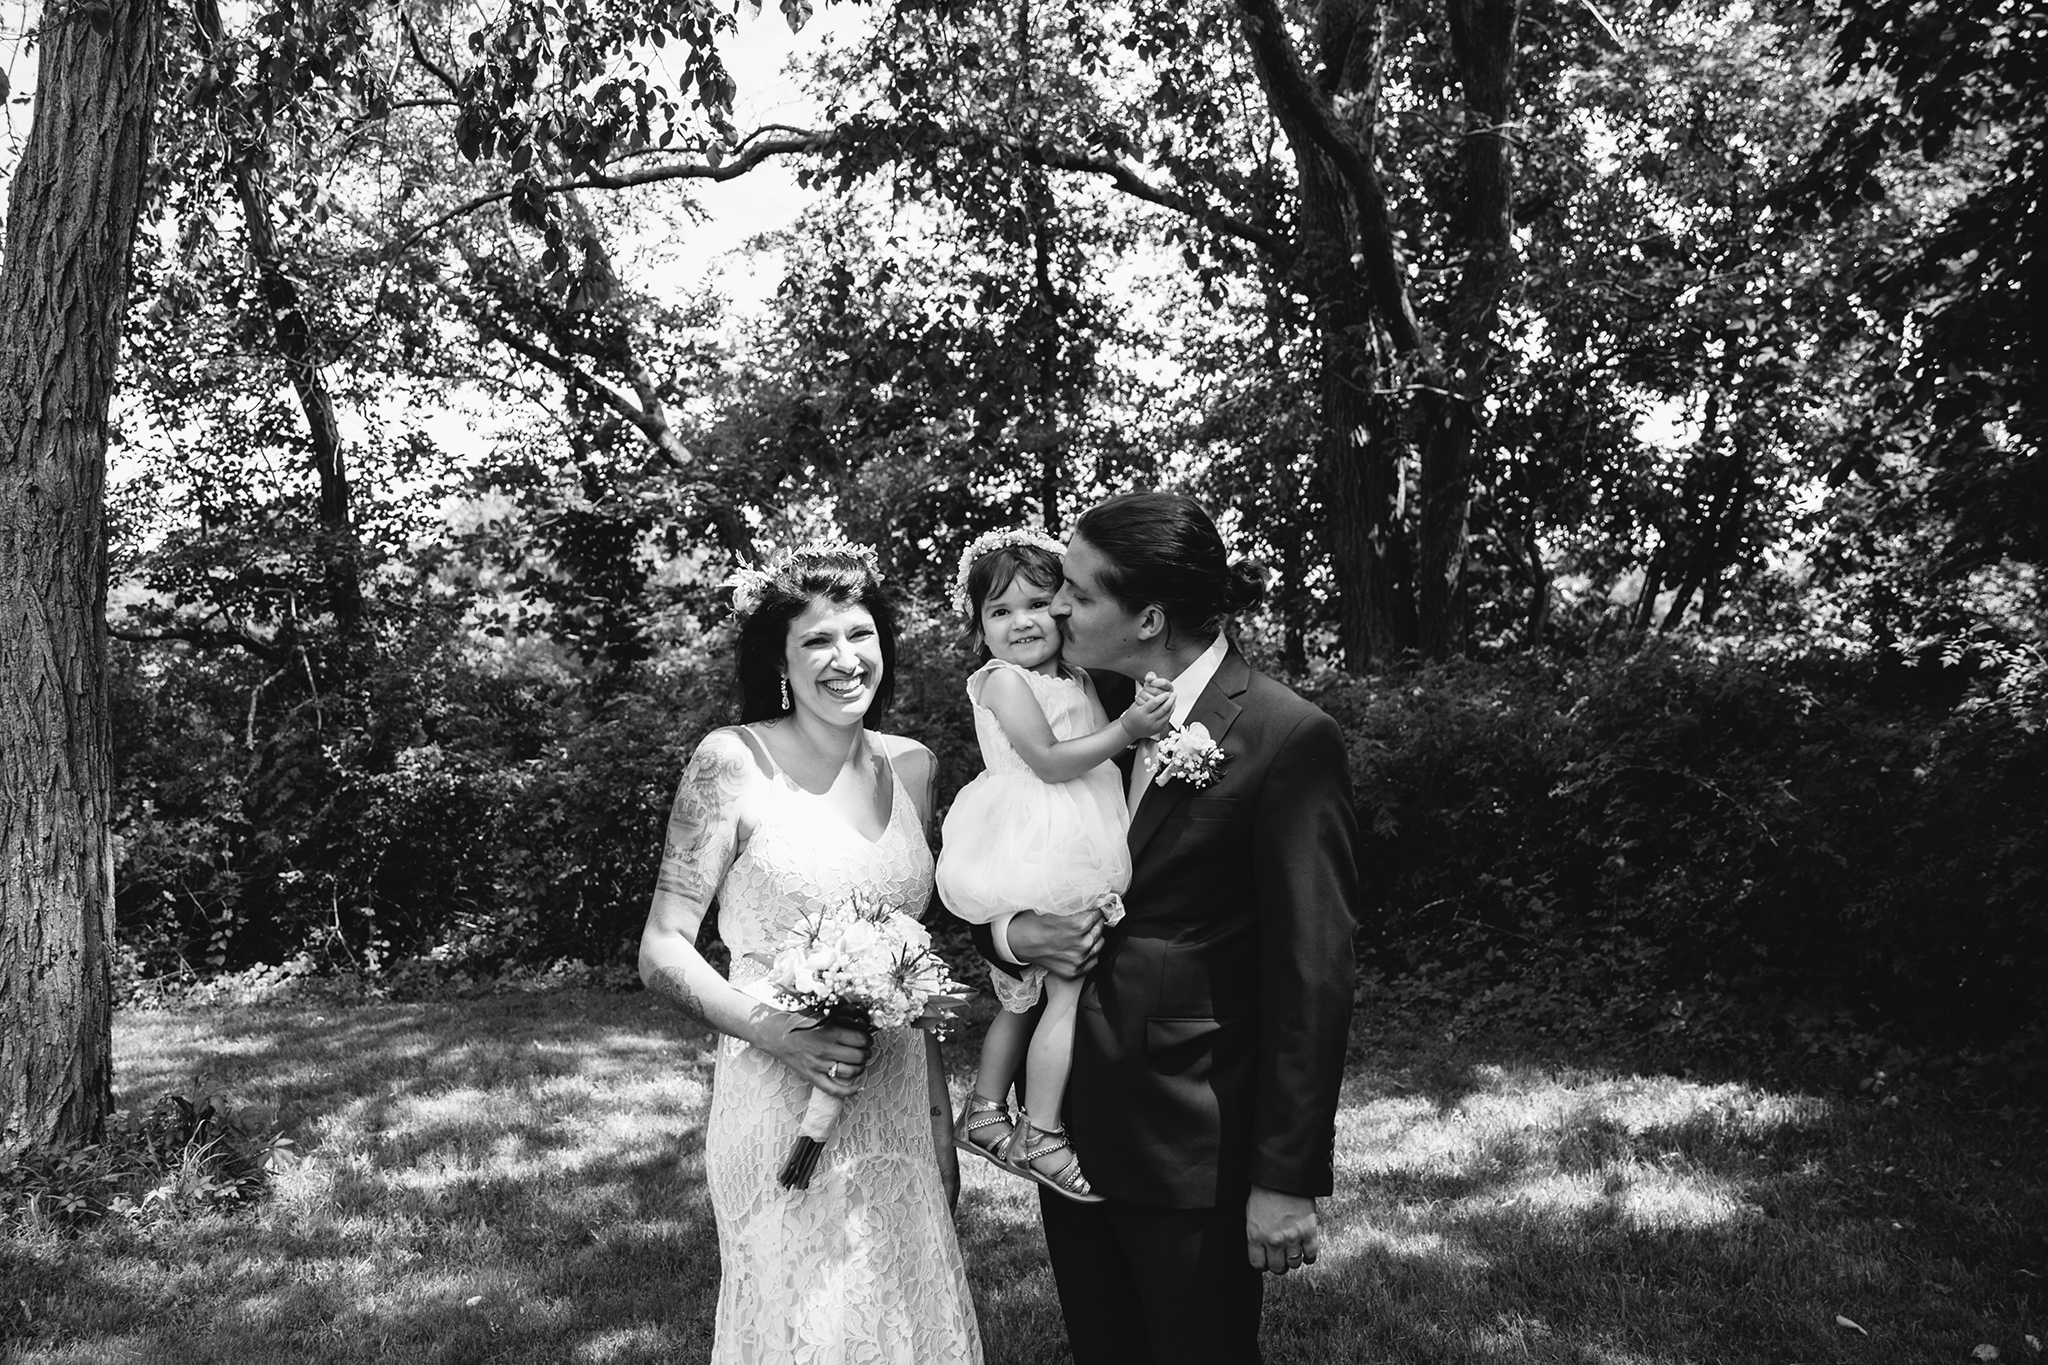 photography by mallory - wedding photographer.jpg